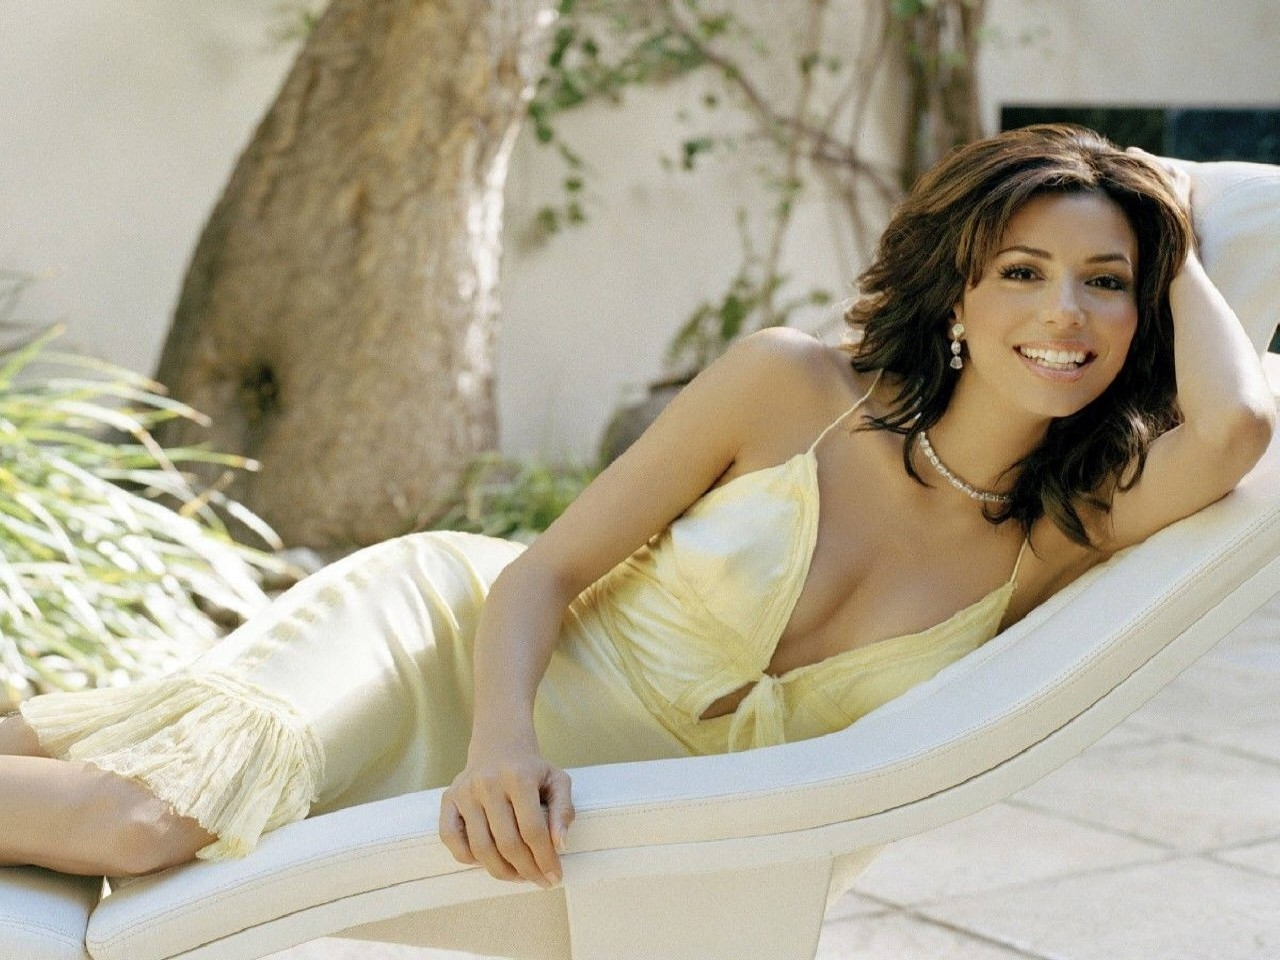 Wallpaper di Eva Longoria Parker - la bella star di Desperate Housewives è nata il 15 marzo 1975 a Corpus Christi, negli USA